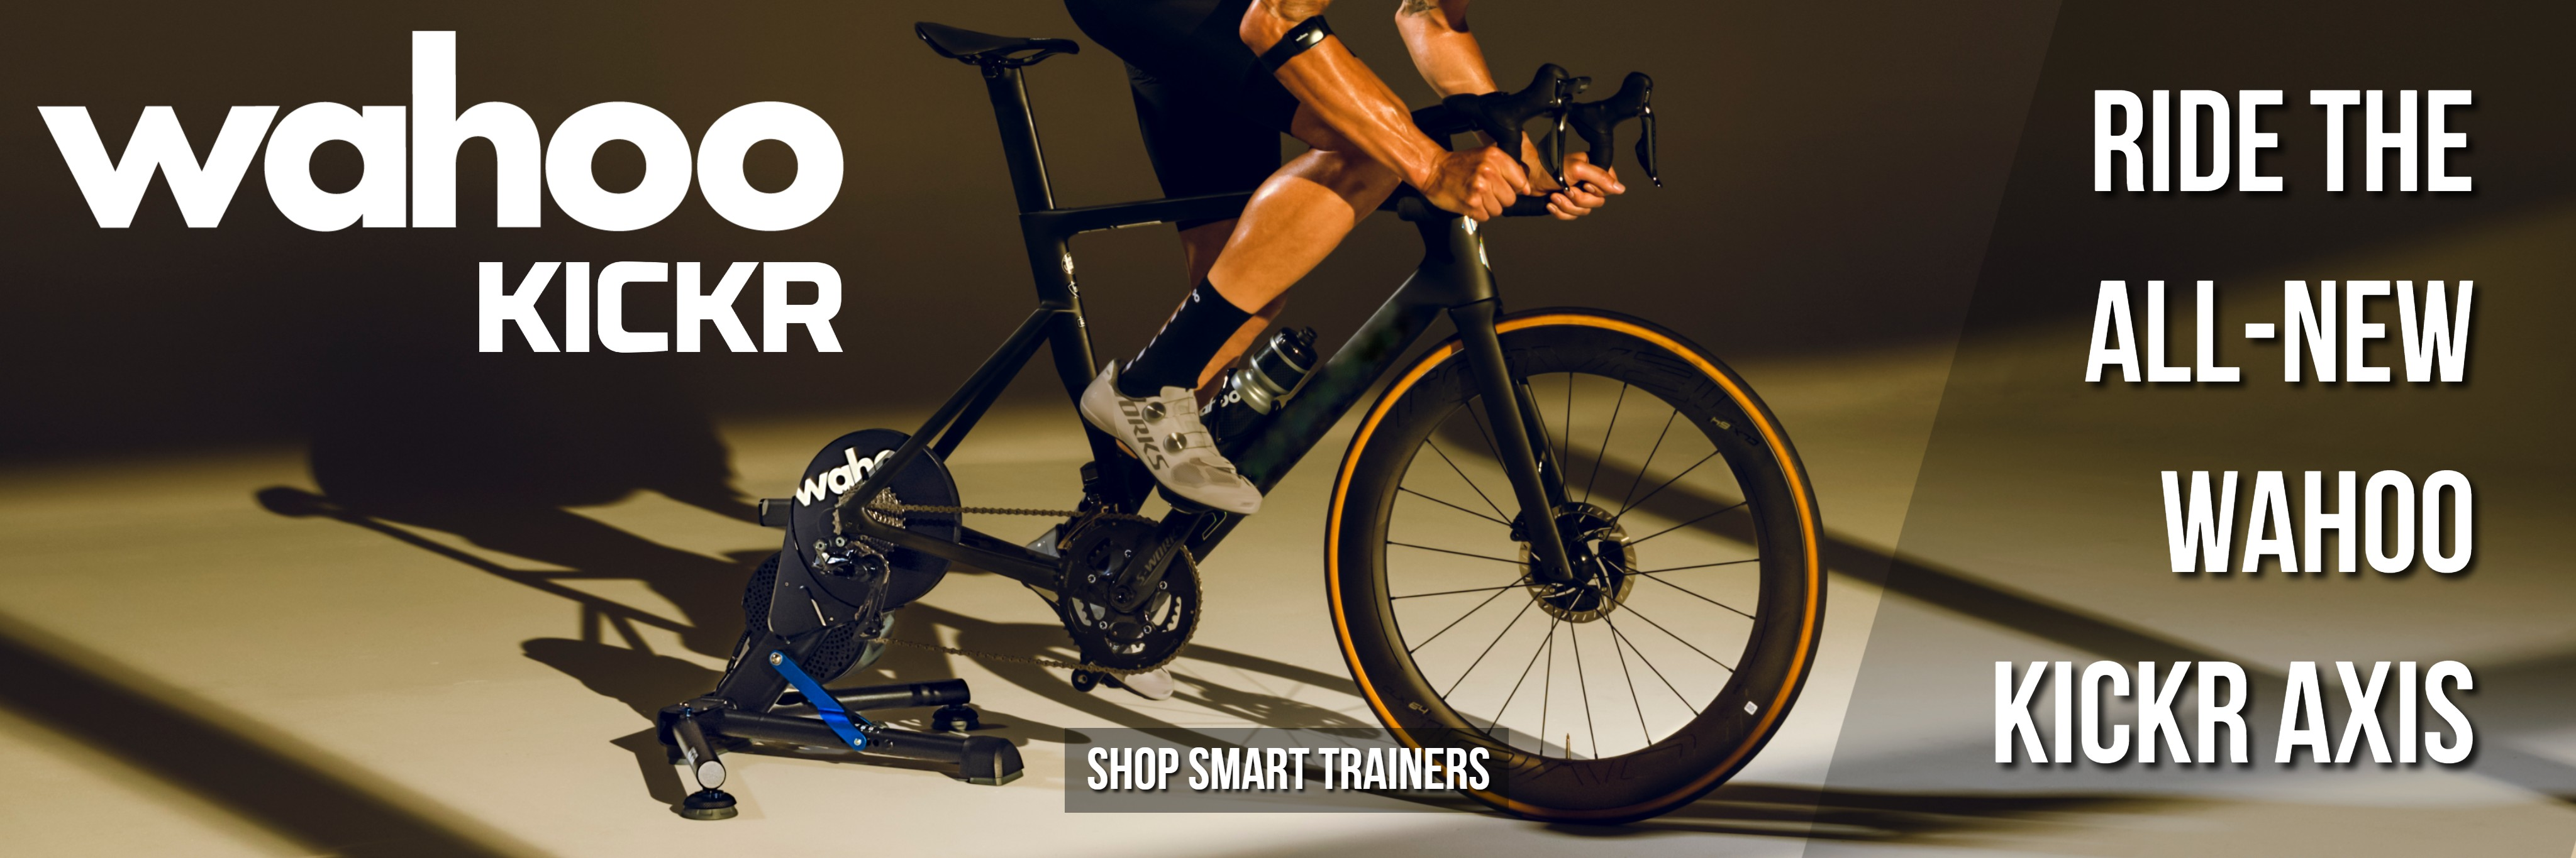 Shop Smart Trainers